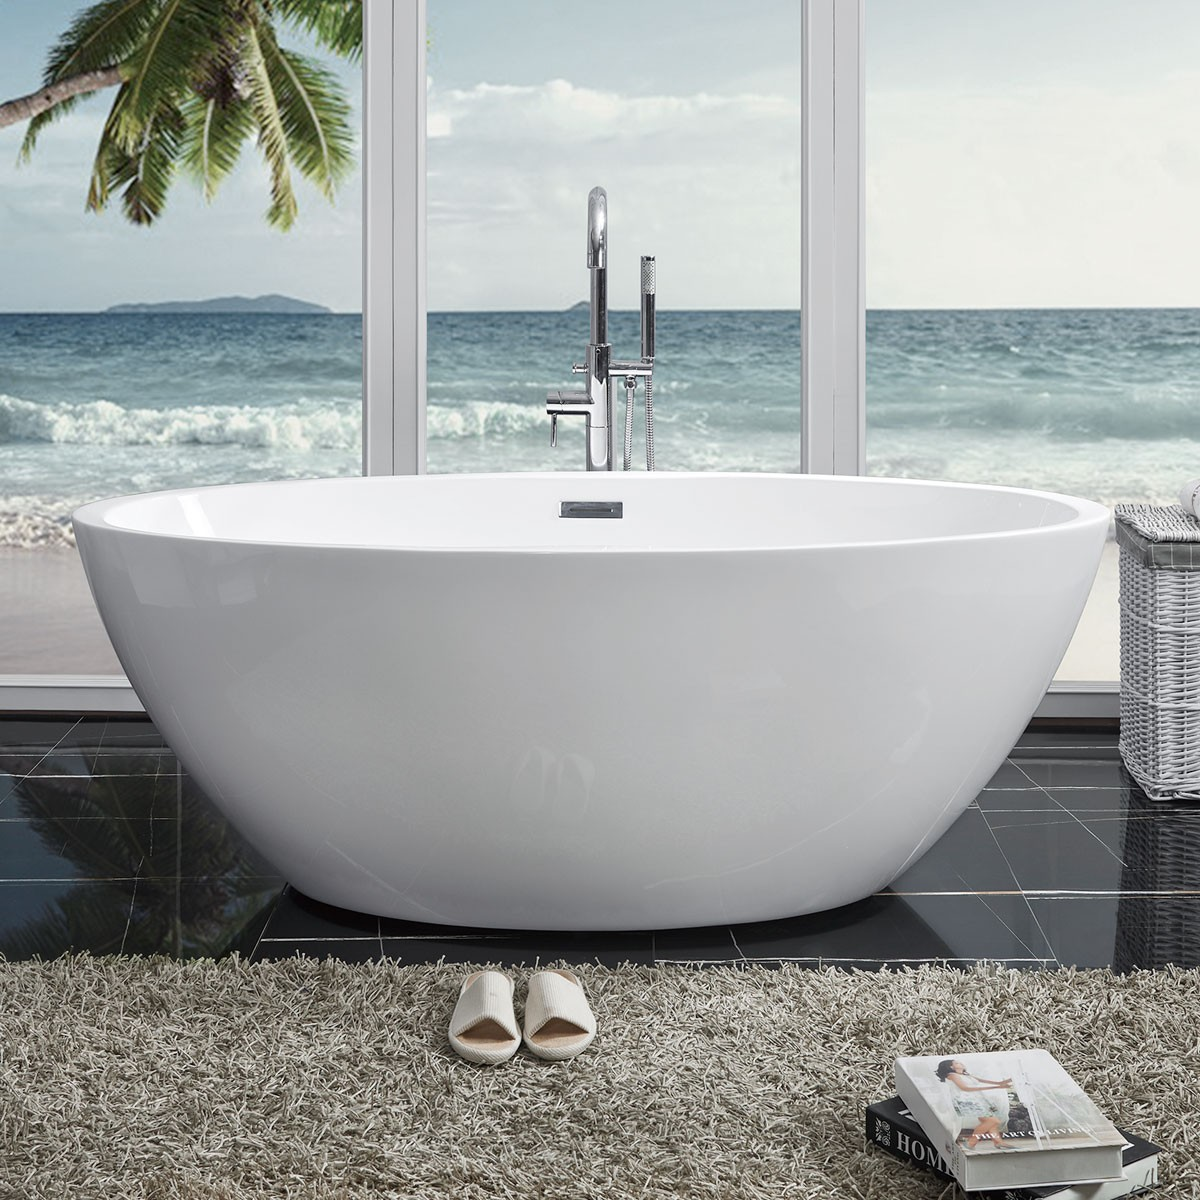 BATHPRO 59 In Freestanding Bathtub - Acrylic Pure White (DK-PW-81572)